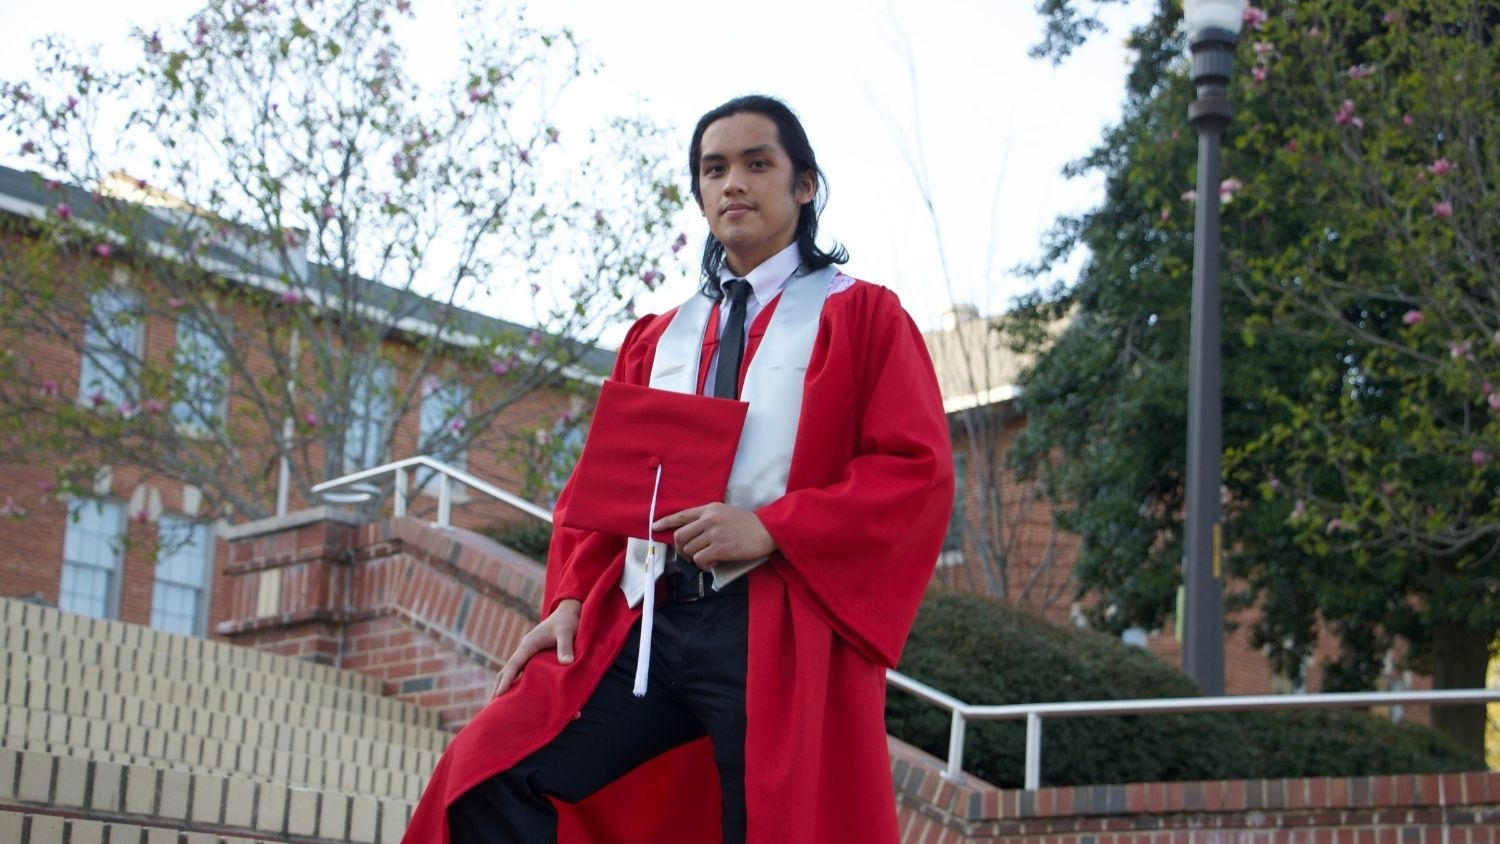 Joshua Pil in Cap and Gown - Graduation to Vocation: Supporting Rare Plant Species in North Carolina - College of Natural Resources at NCState University